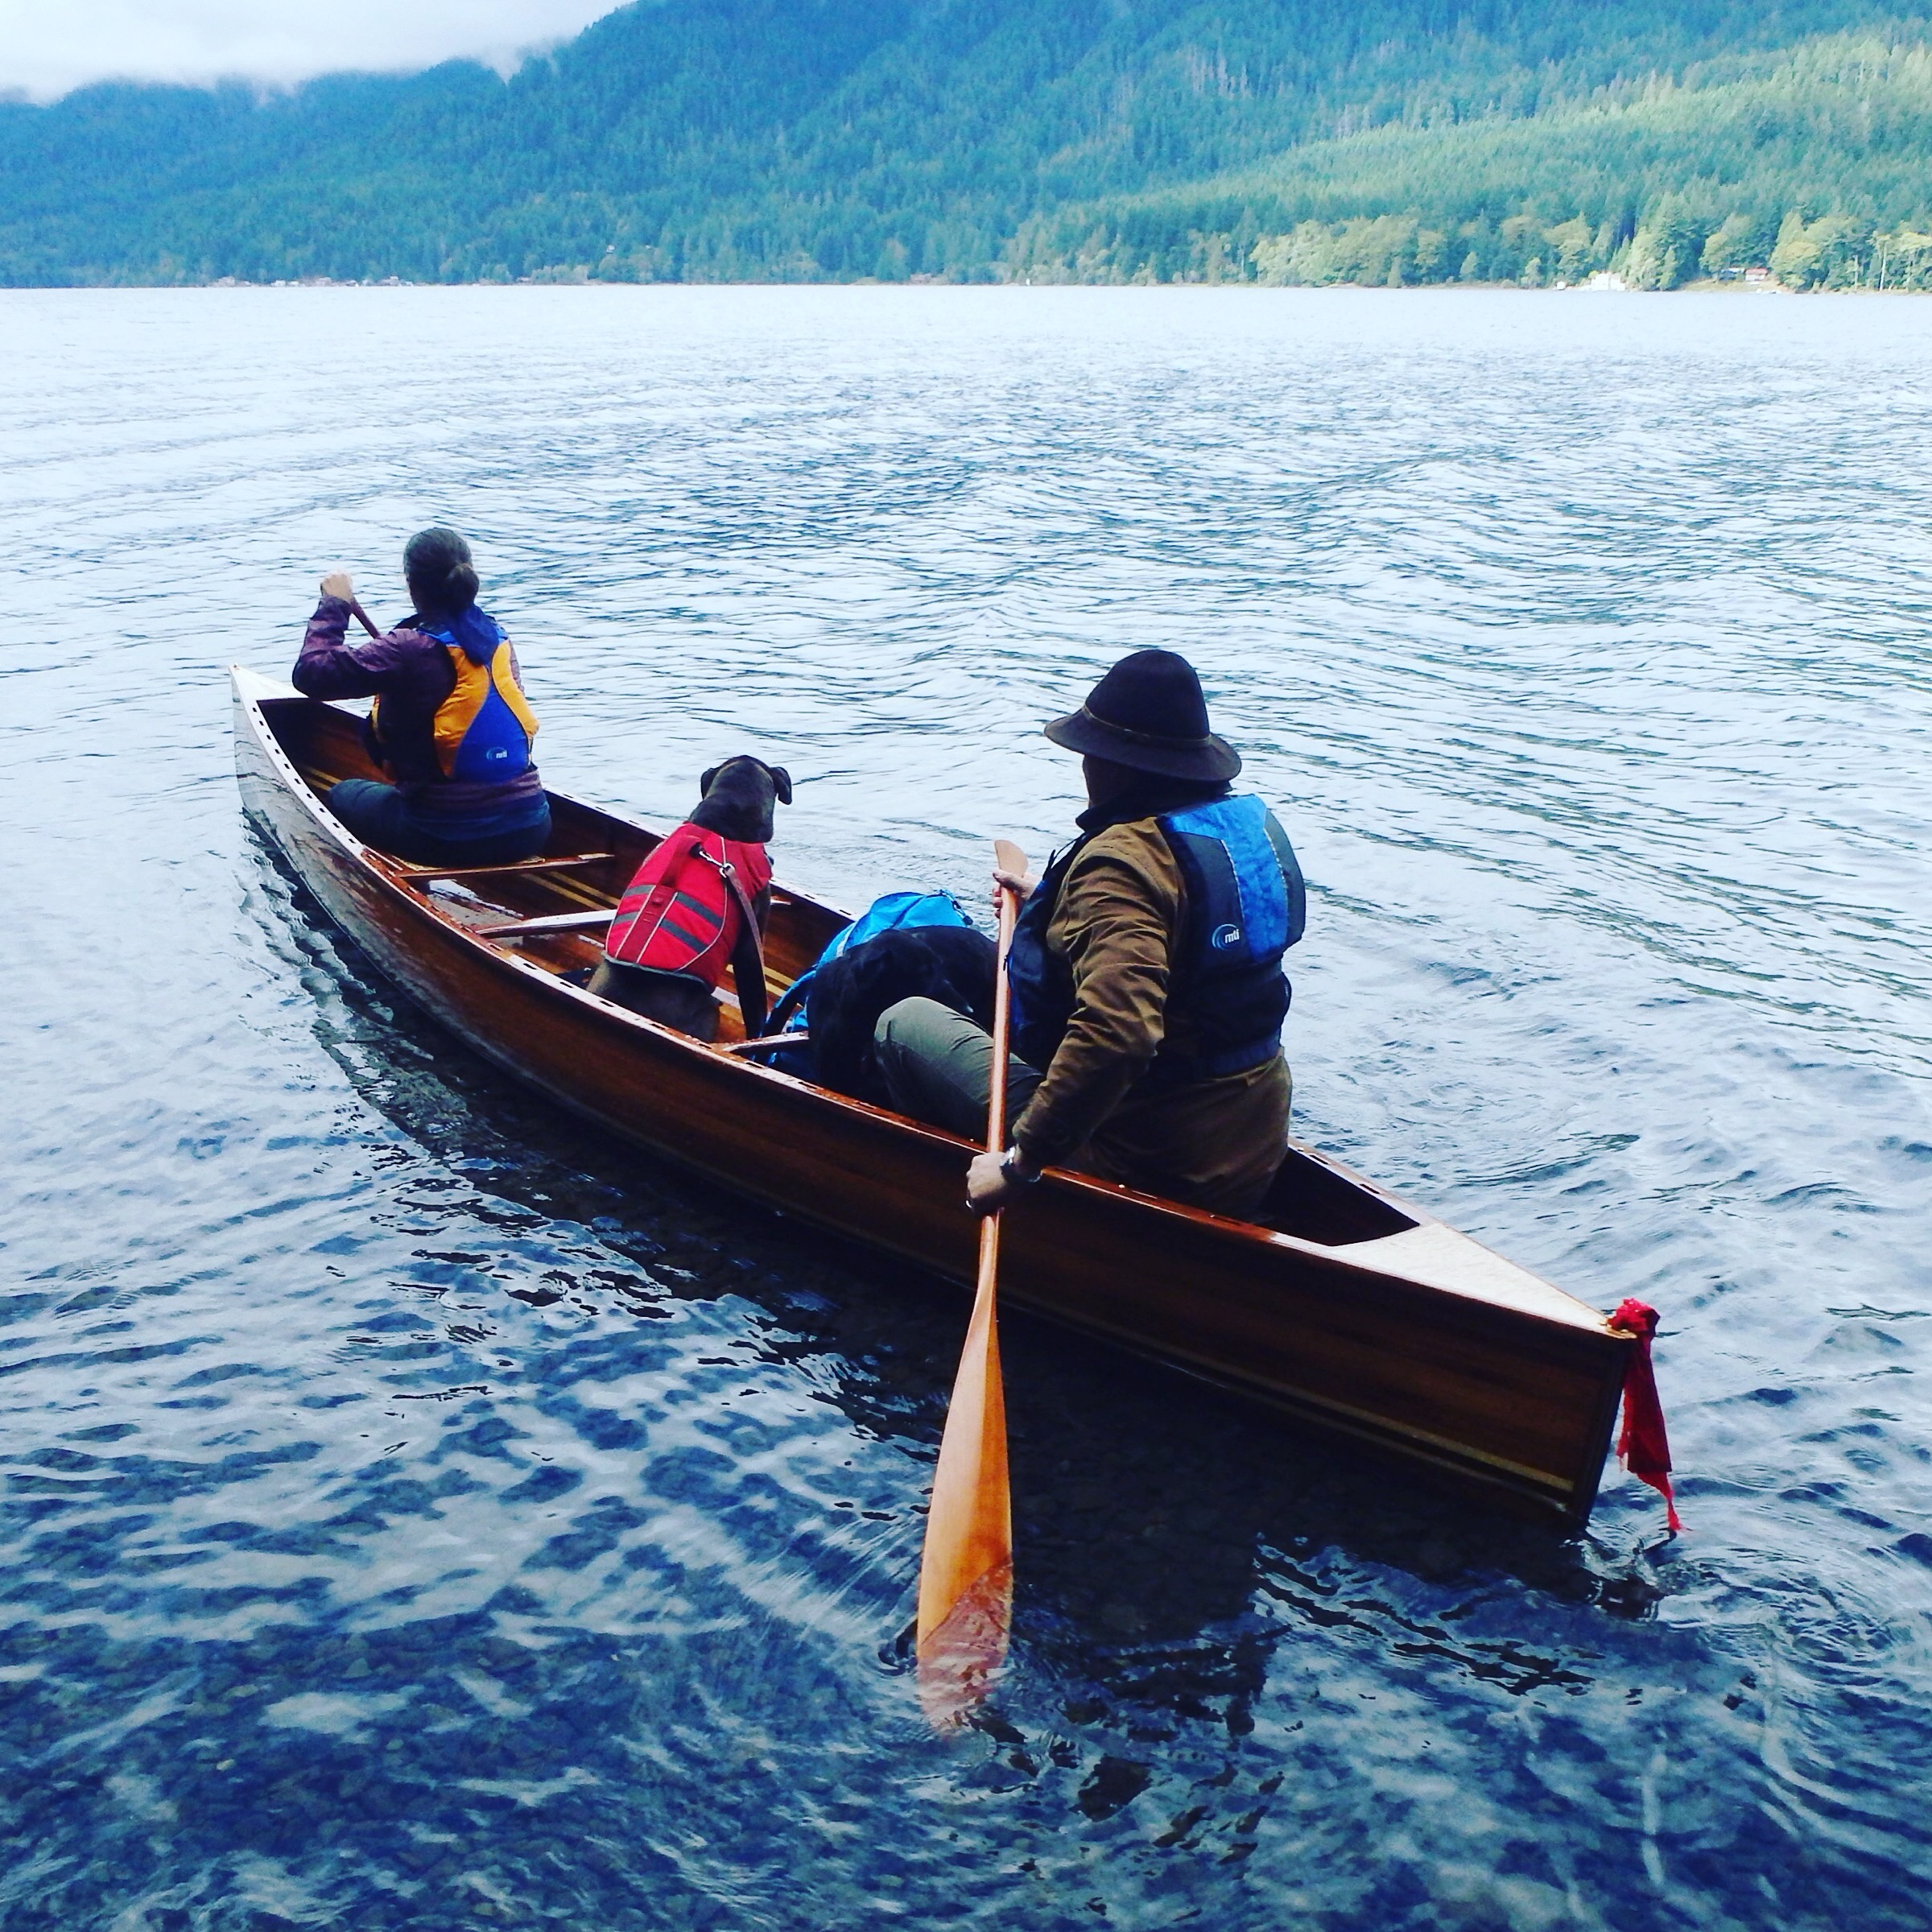 Two people and dogs in a canoe on Lake Crescent, Washington.